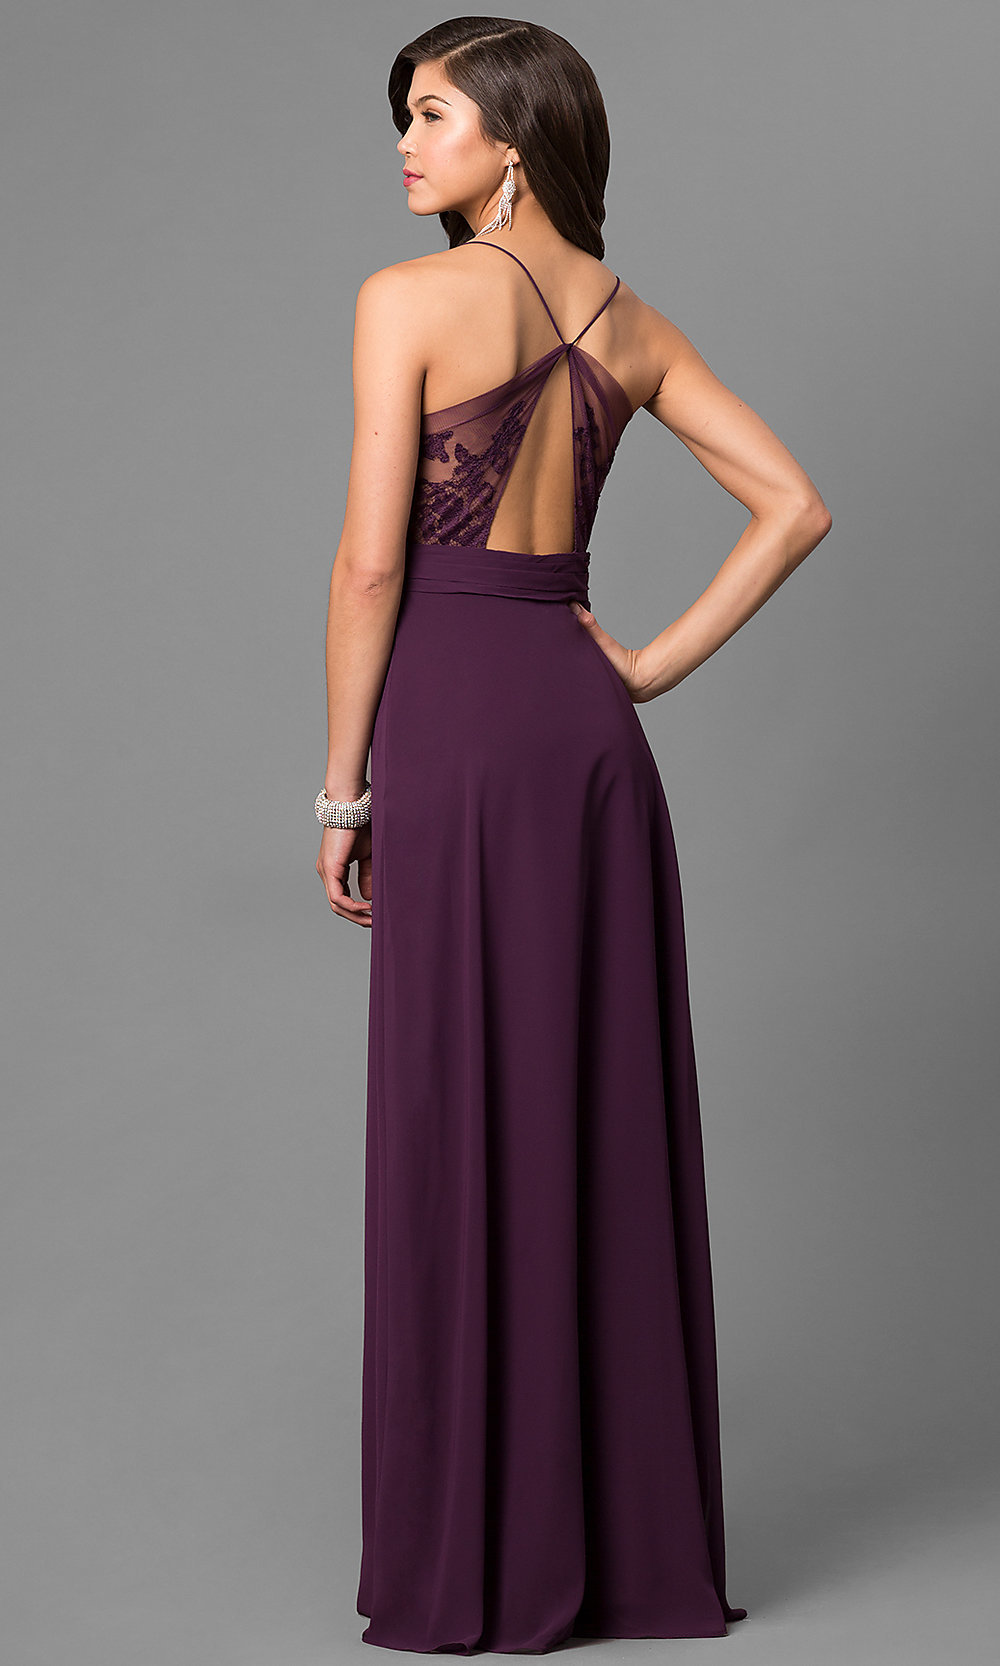 Eggplant Purple Long Prom Dress With V Neck Promgirl